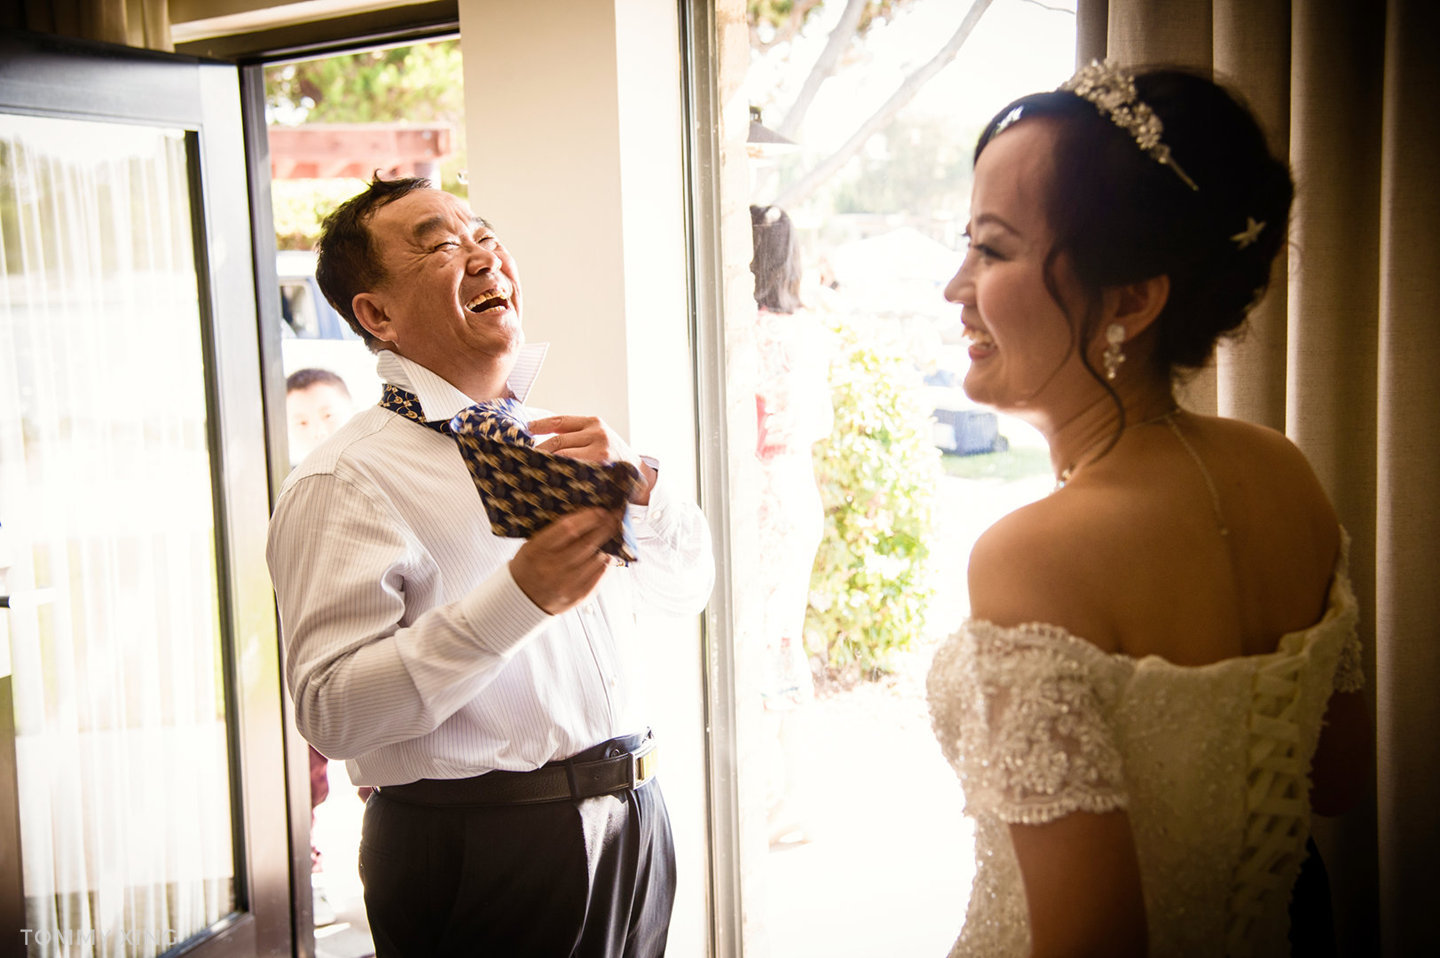 Paradise Point Resort Wedding Xiaolu & Bin San Diego 圣地亚哥婚礼摄影跟拍 Tommy Xing Photography 洛杉矶婚礼婚纱照摄影师 041.jpg